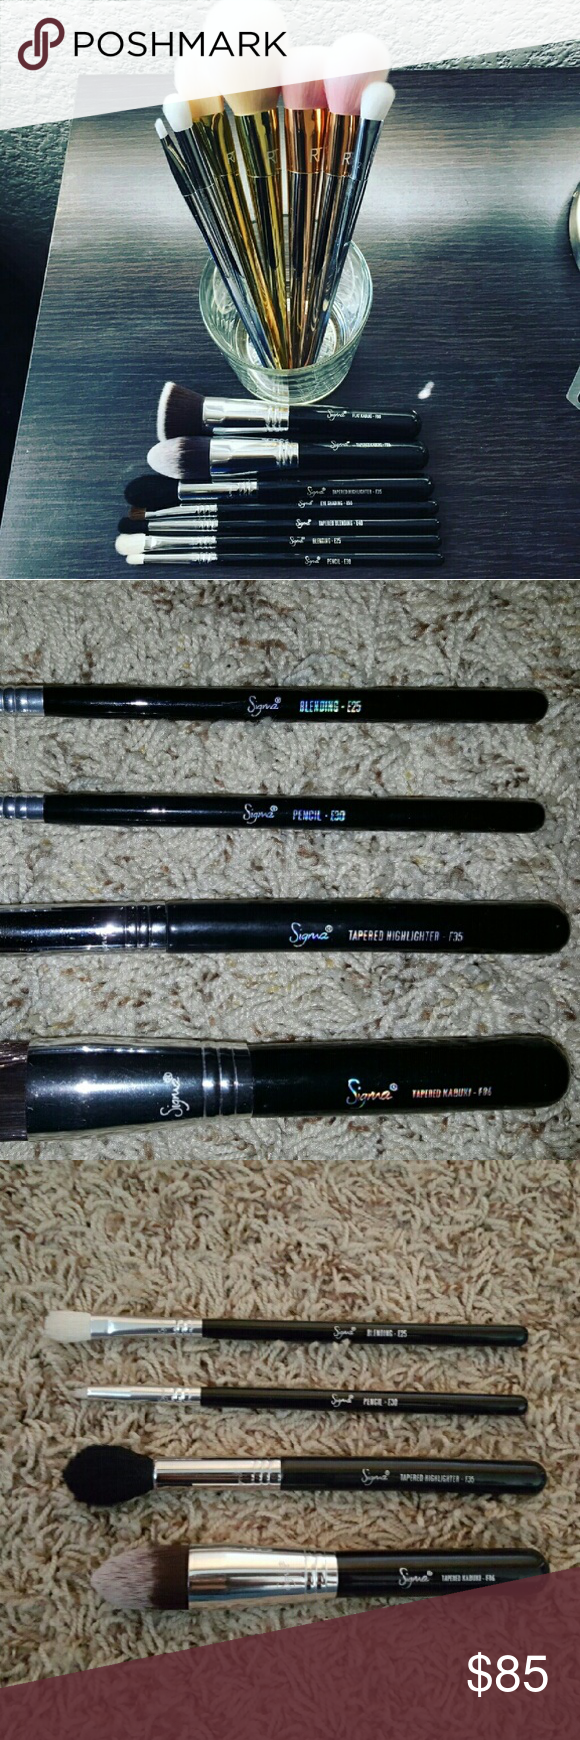 $30!!! FLASH SALE!!FOUR Sigma brushes!! Authentic sigma brushes. I have posted these on another site and these are the ones I have left. Feel free to make offers or if you would like to purchase one individually I can make a separate post for that:) Brushes include: F86, F35, E30, E25.  F35 has been used but has been sanatized. If you have any questions feel free to ask:) Urban Decay Makeup Brushes & Tools